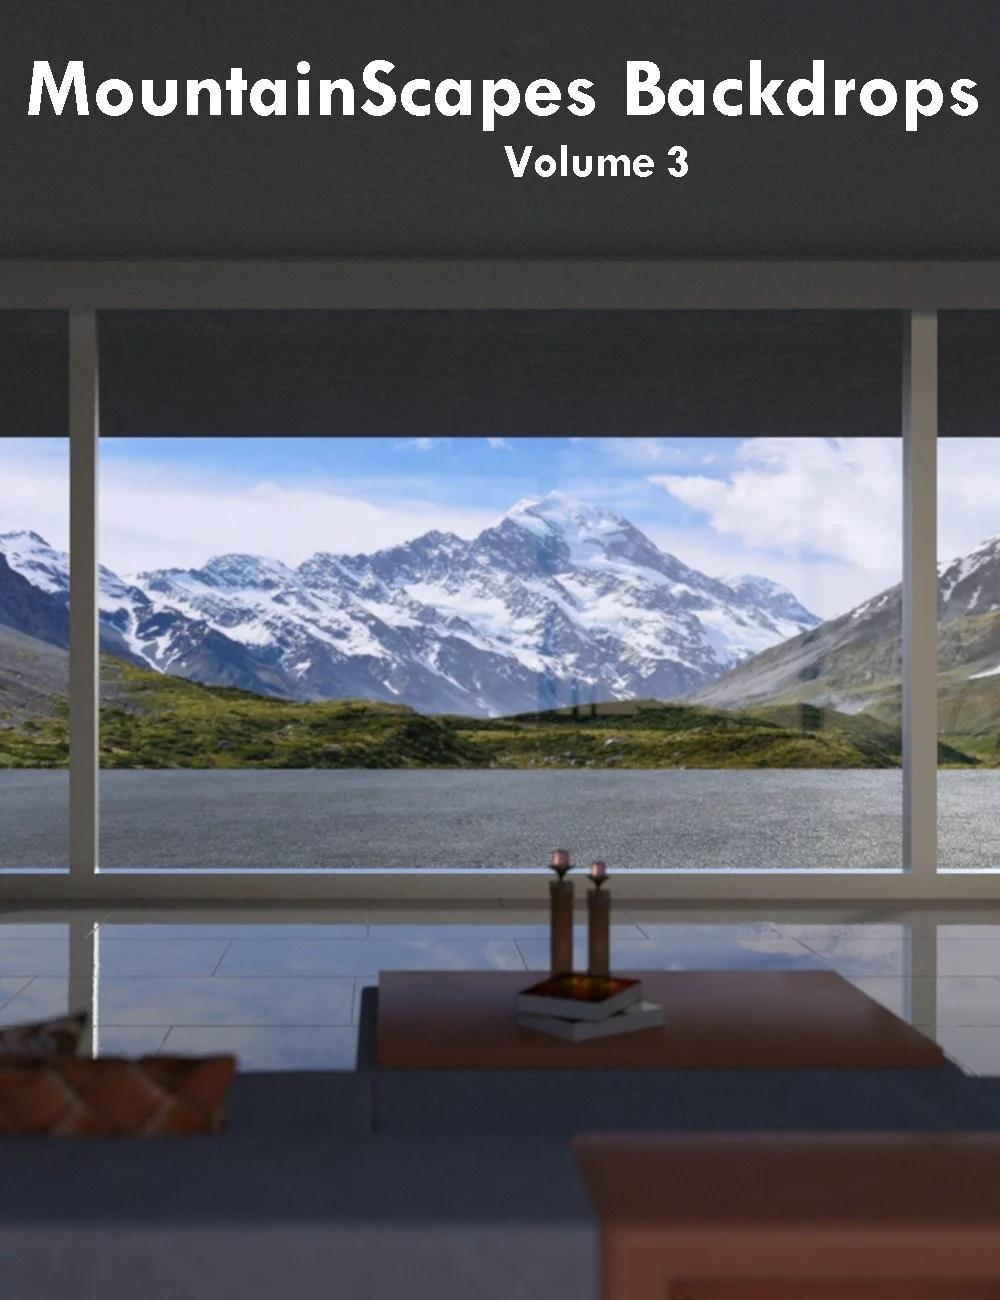 MountainScapes Backdrops Volume 3